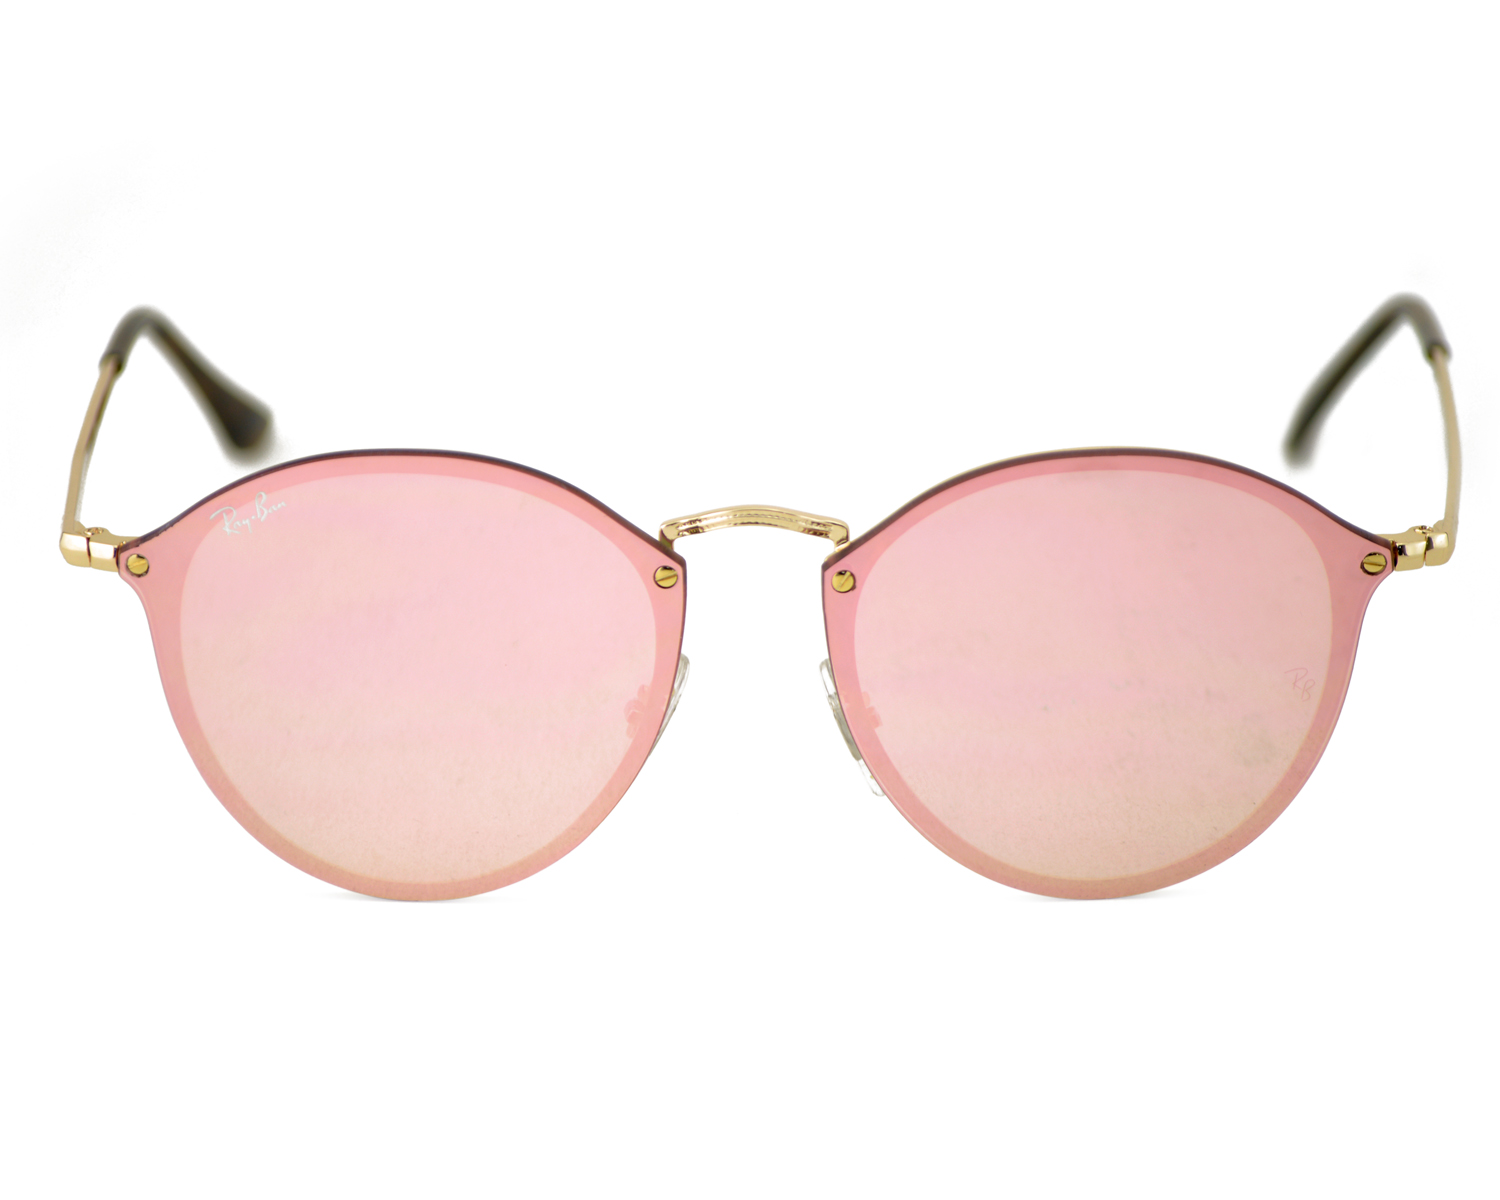 c2c1b44541 Ray-Ban RB3574N Blaze Round 001 E4 Gold Frame Pink Mirror Lenses Unisex  Sunglasses 59mm